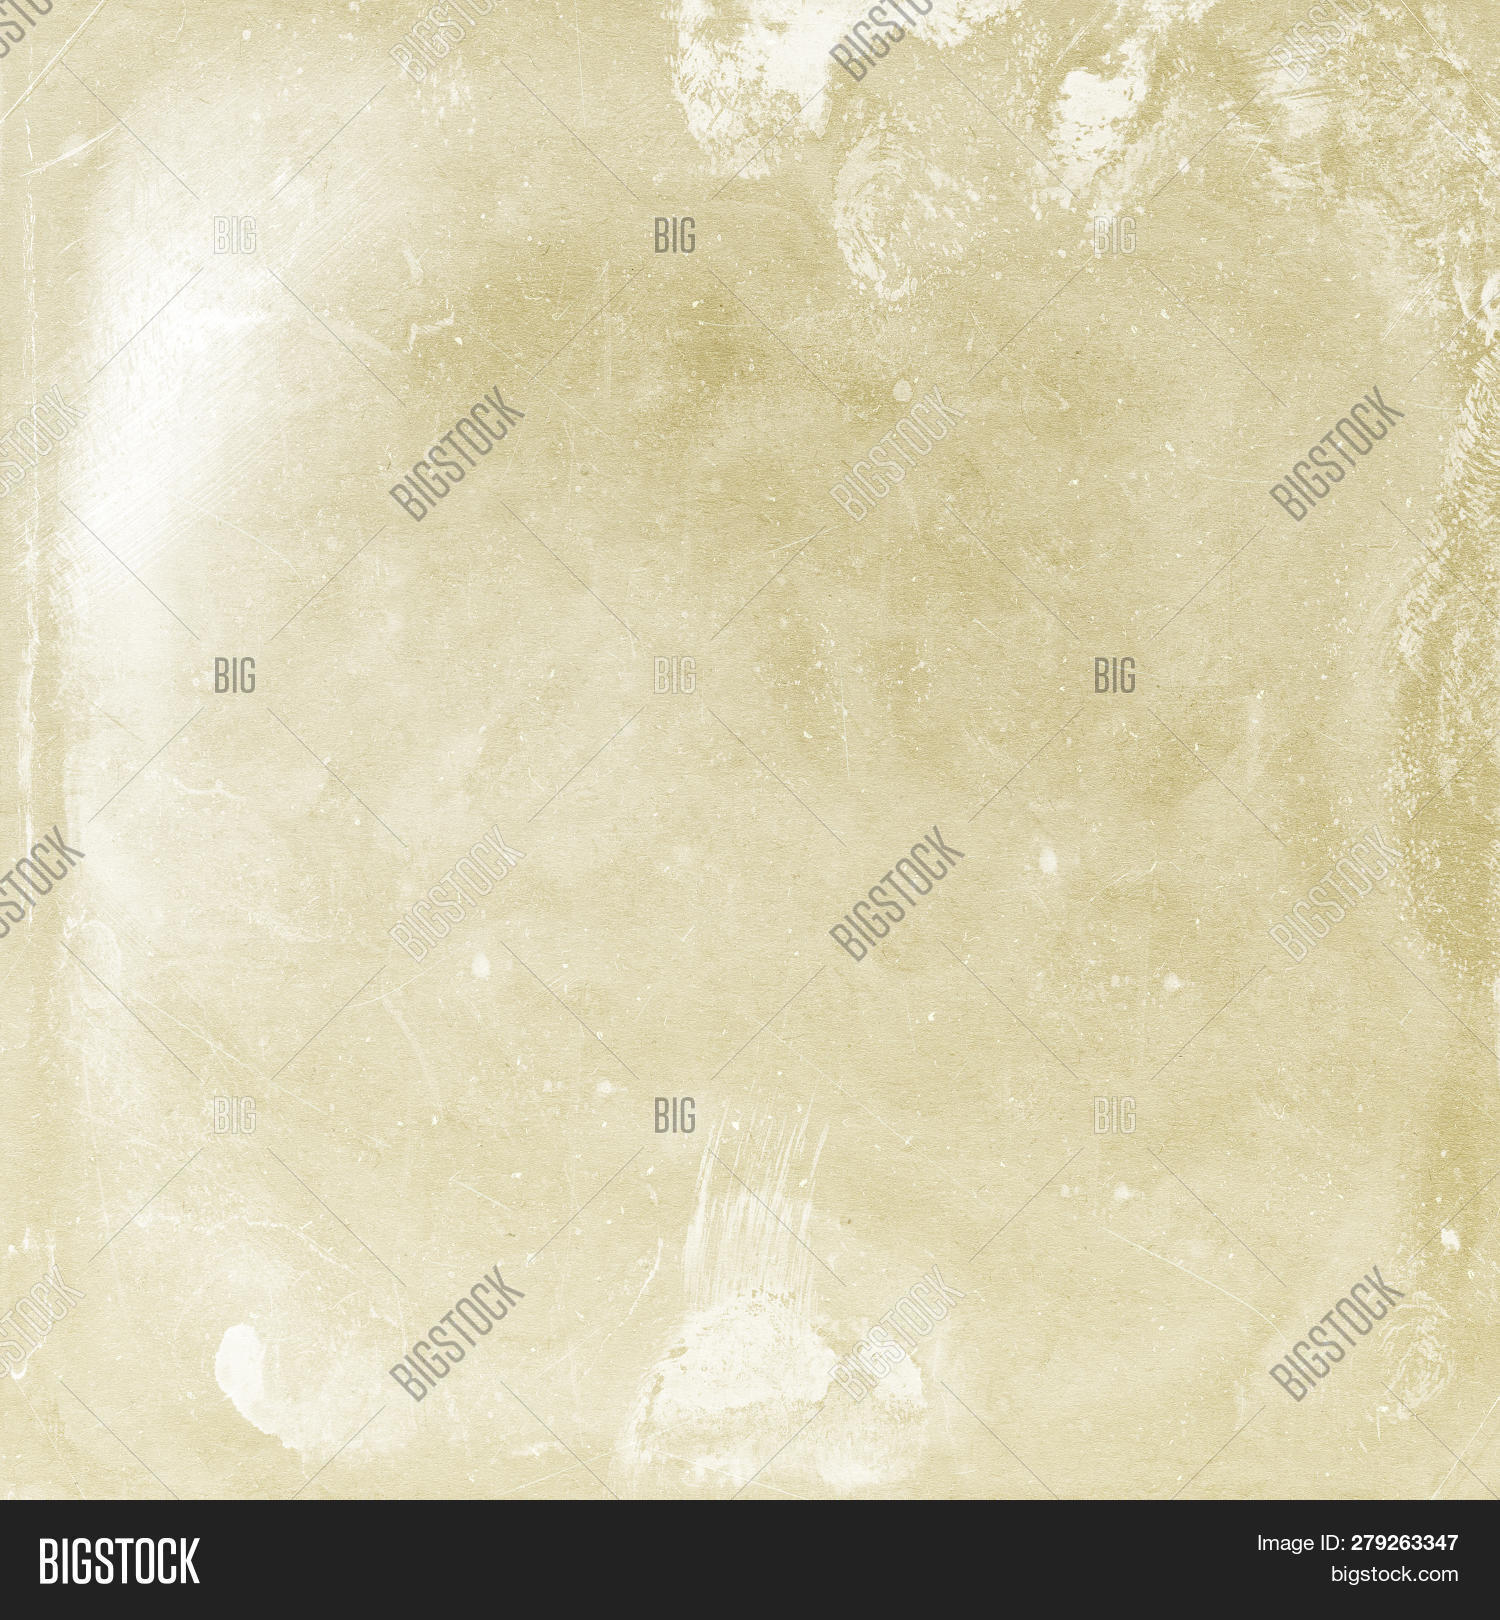 Abstract,Art,aged,ancient,antique,background,beige,blank,brown,design,dirt,dirty,dust,grunge,illustration,old,paint,paper,parchment,pattern,retro,rough,scratches,texture,vintage,wall